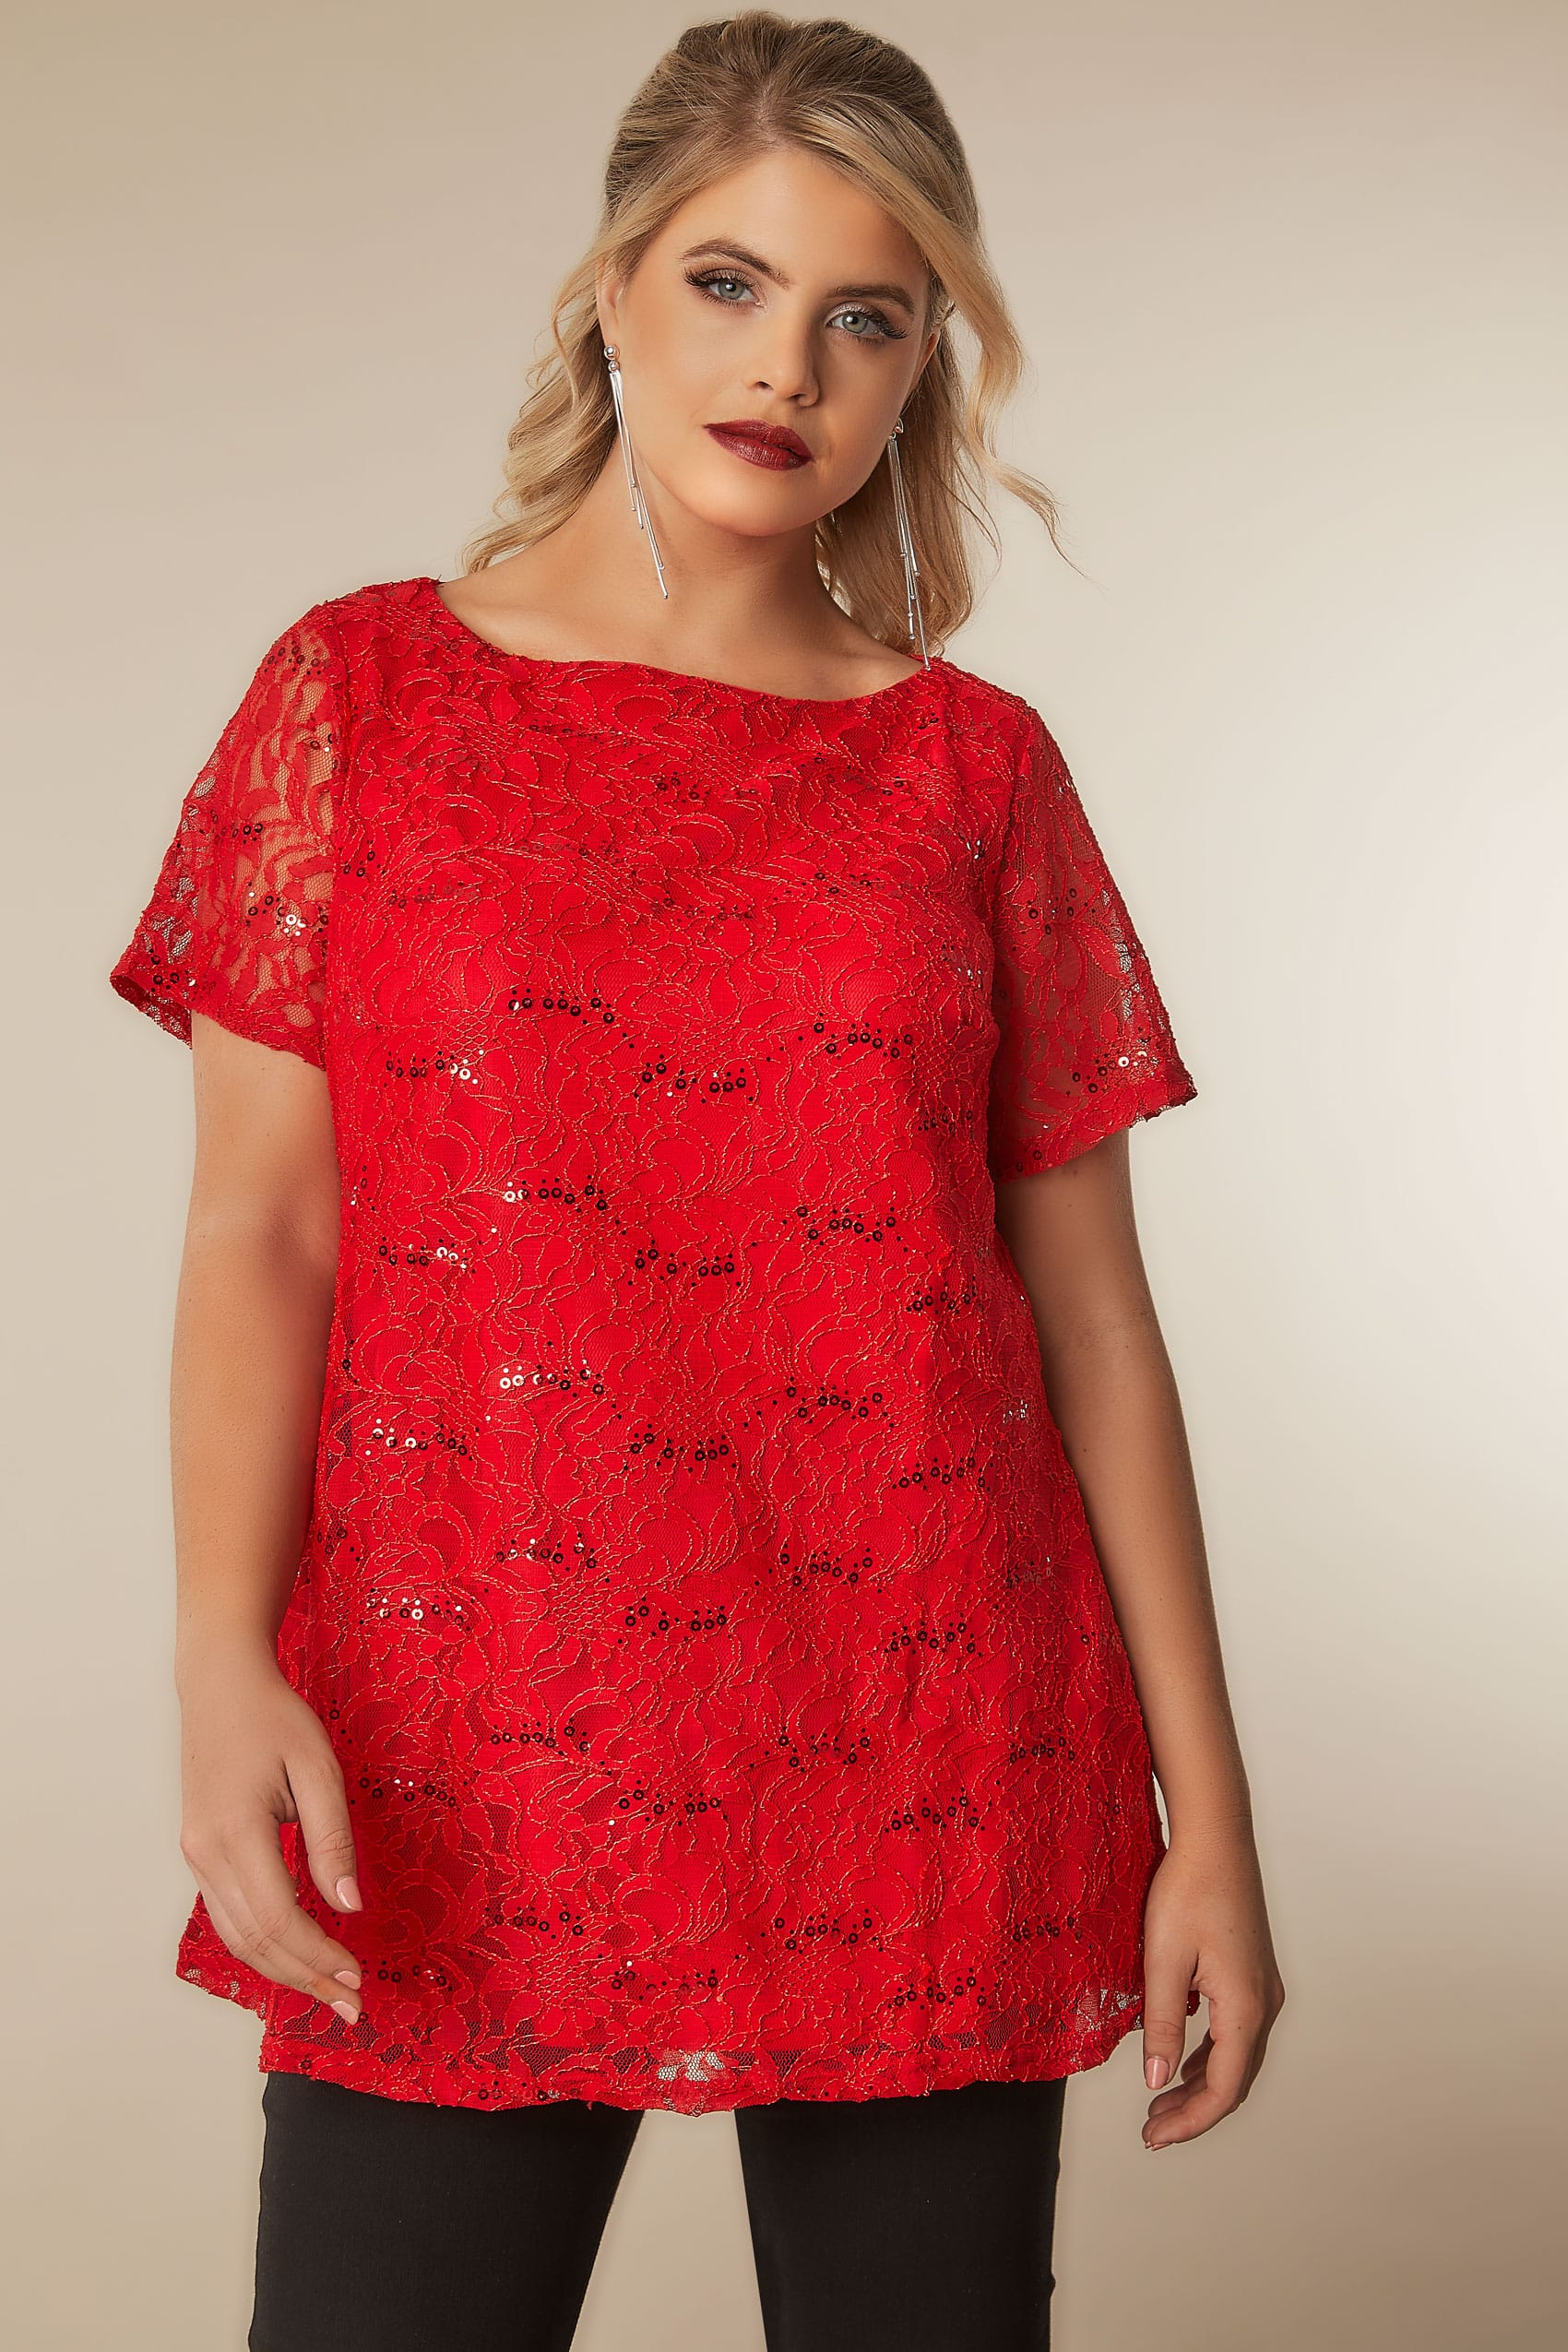 Red Lace Shell Top With Sequin Details, Plus size 16 to 36